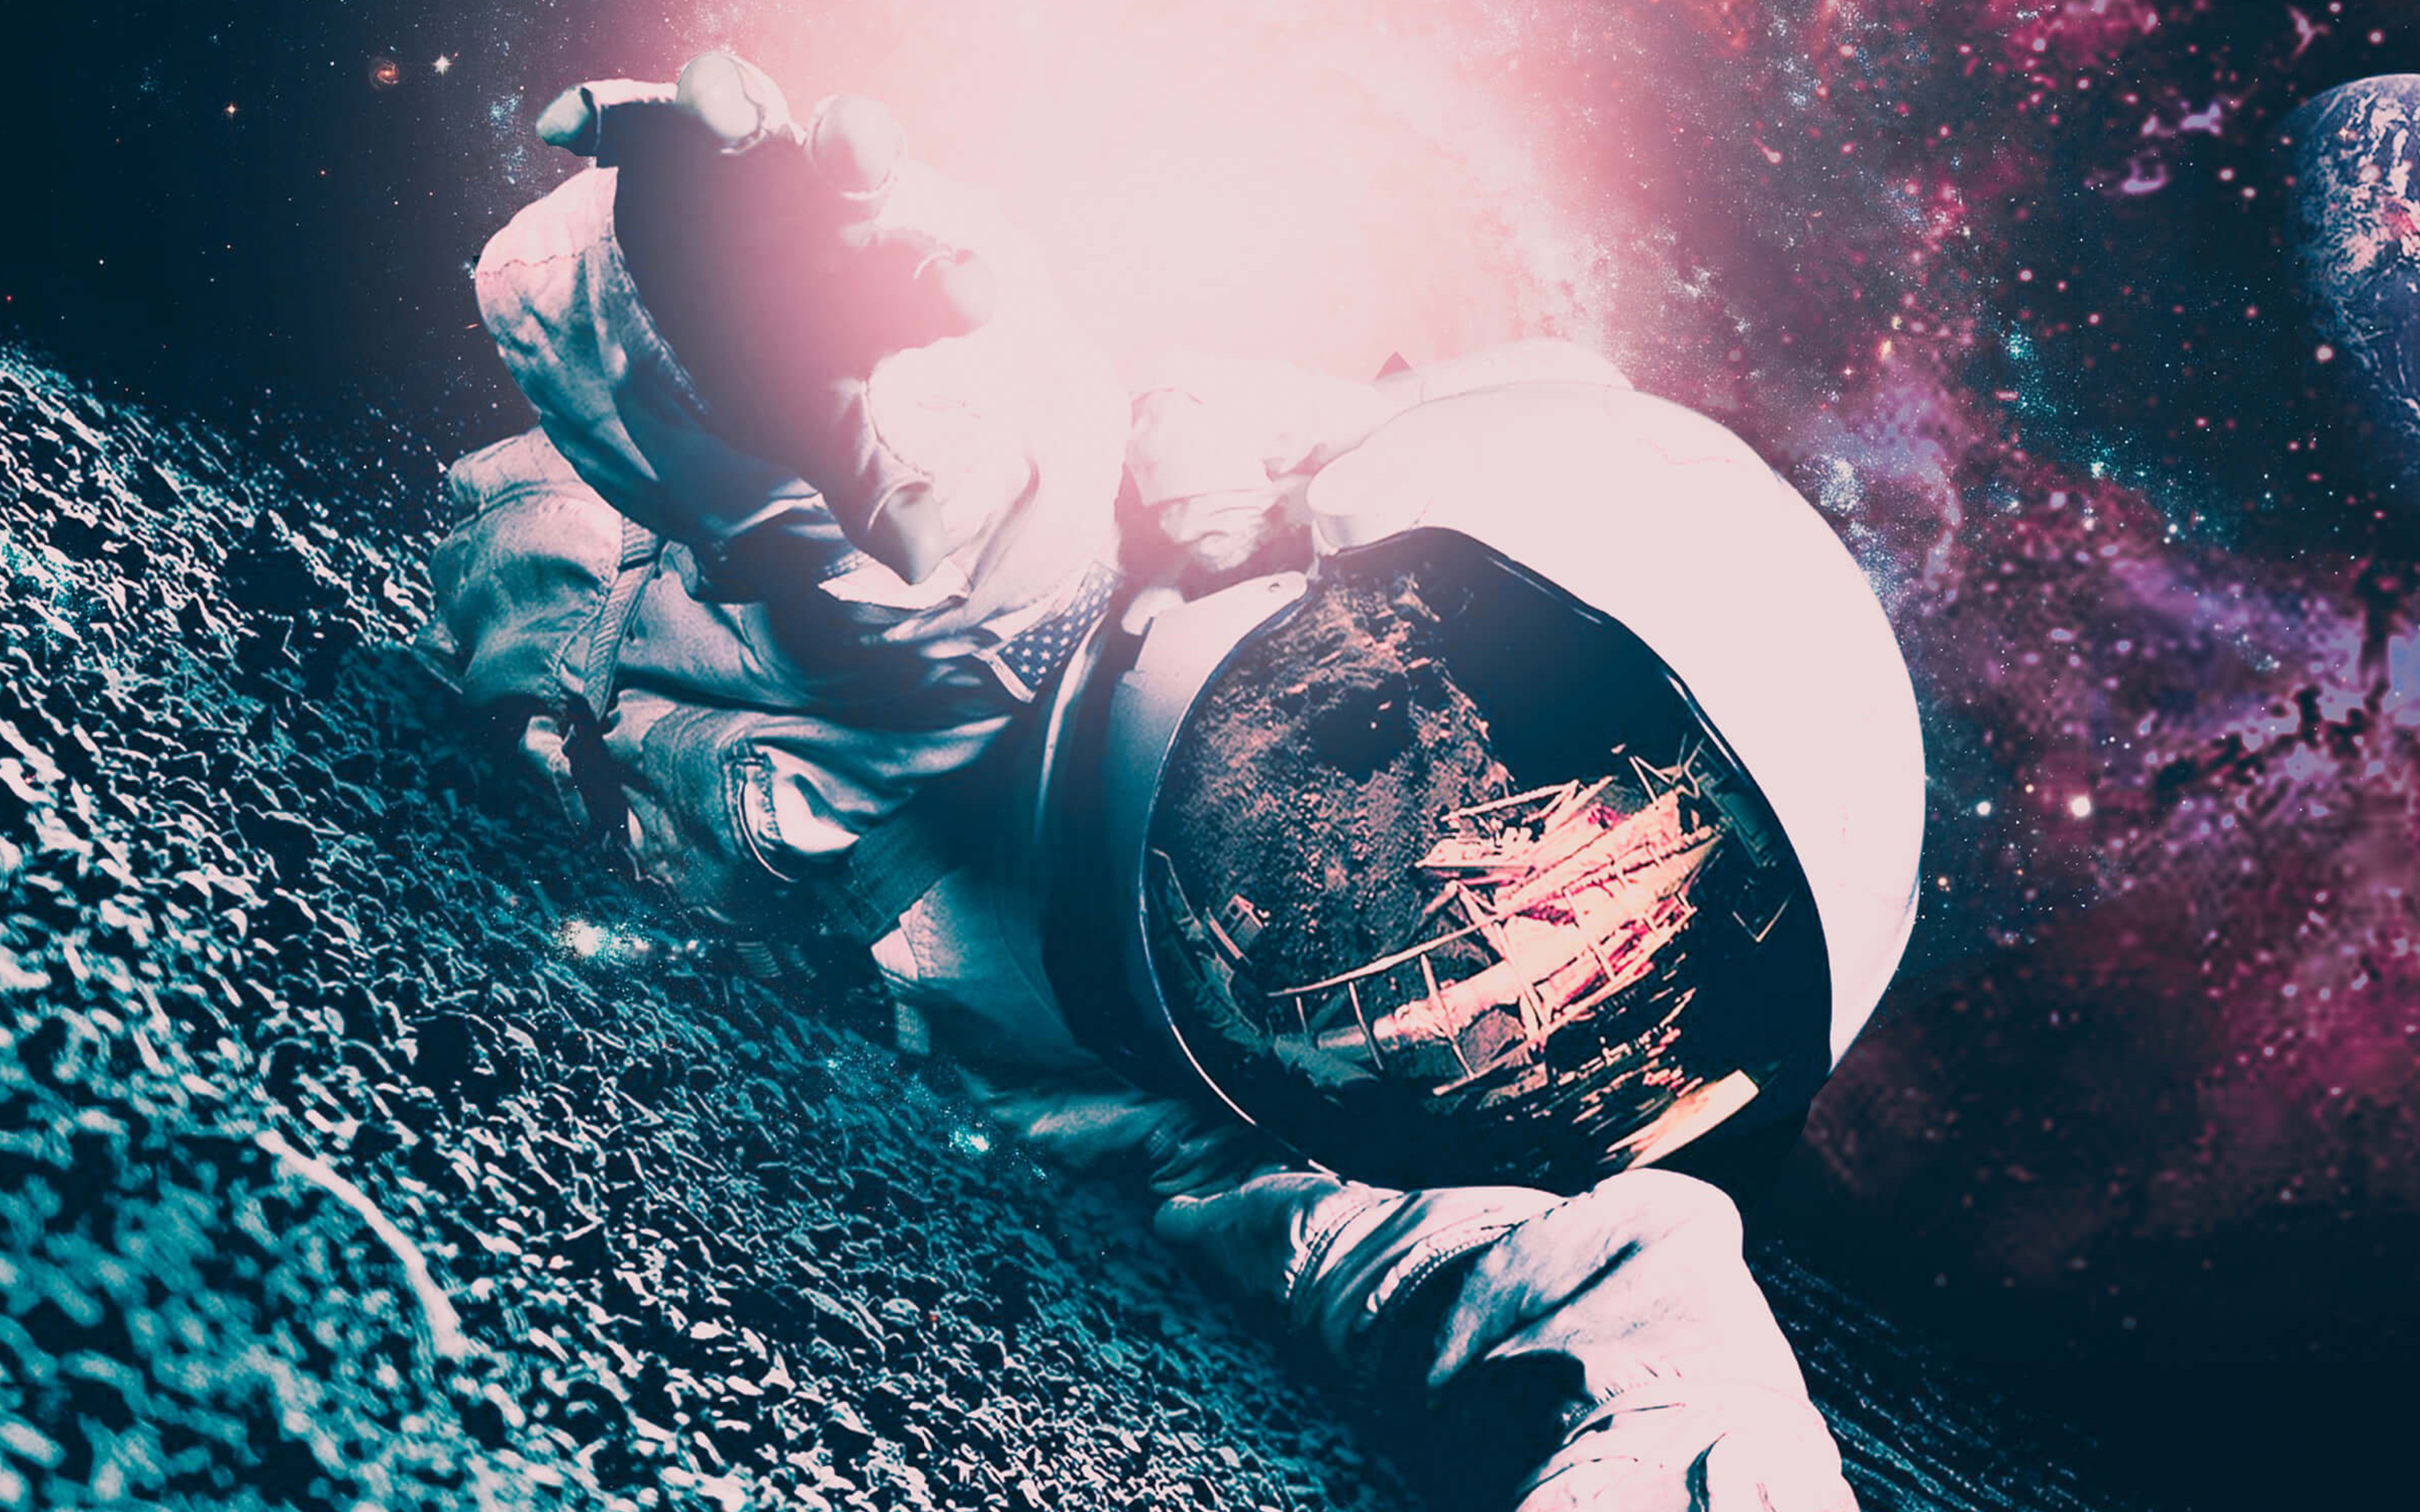 3840x2400 Lost Astronaut 4k Hd 4k Wallpapers Images Backgrounds Photos And Pictures